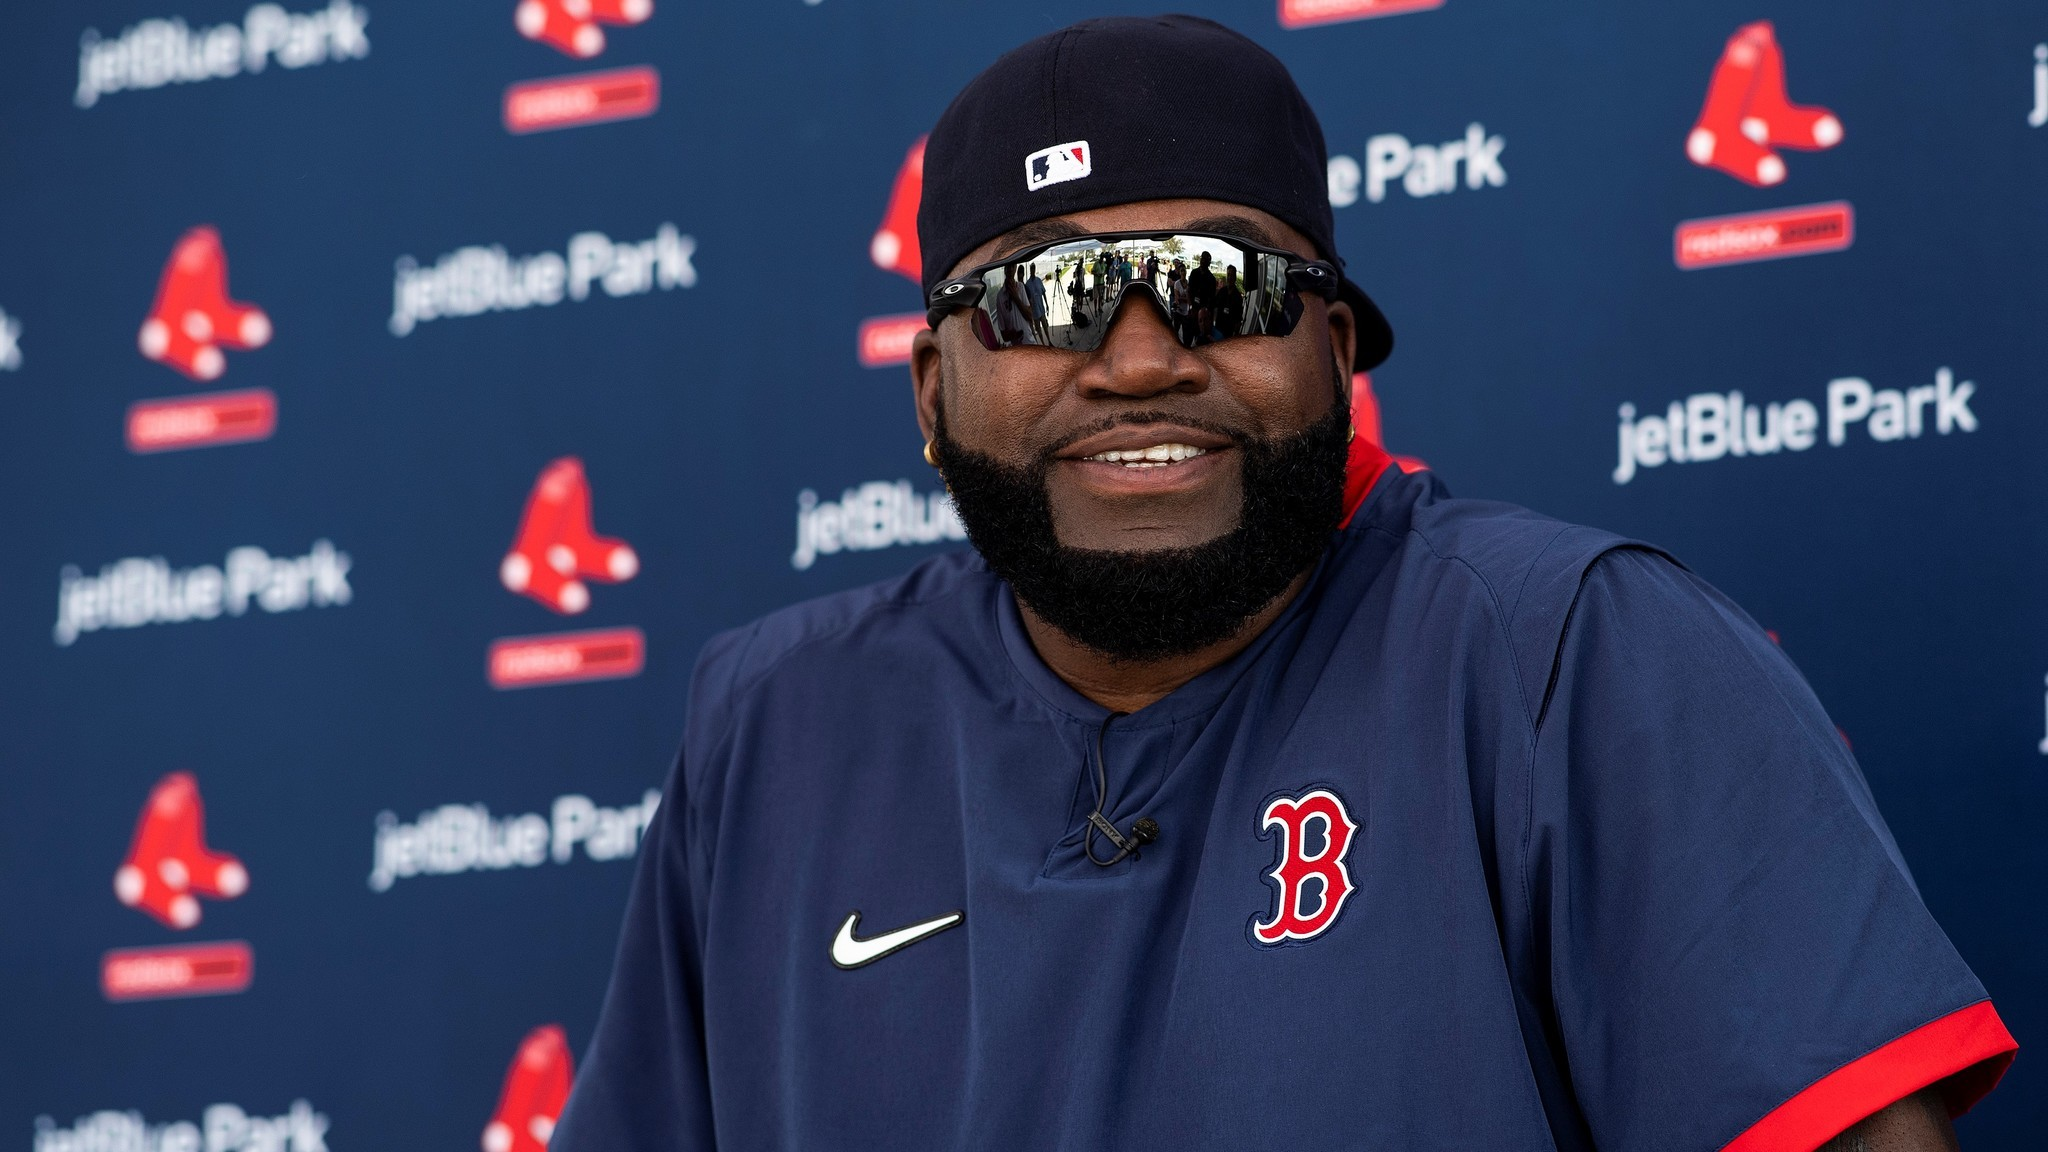 David Ortiz calls Astros whistleblower Mike Fiers a 'snitch,' defends Rob Manfred